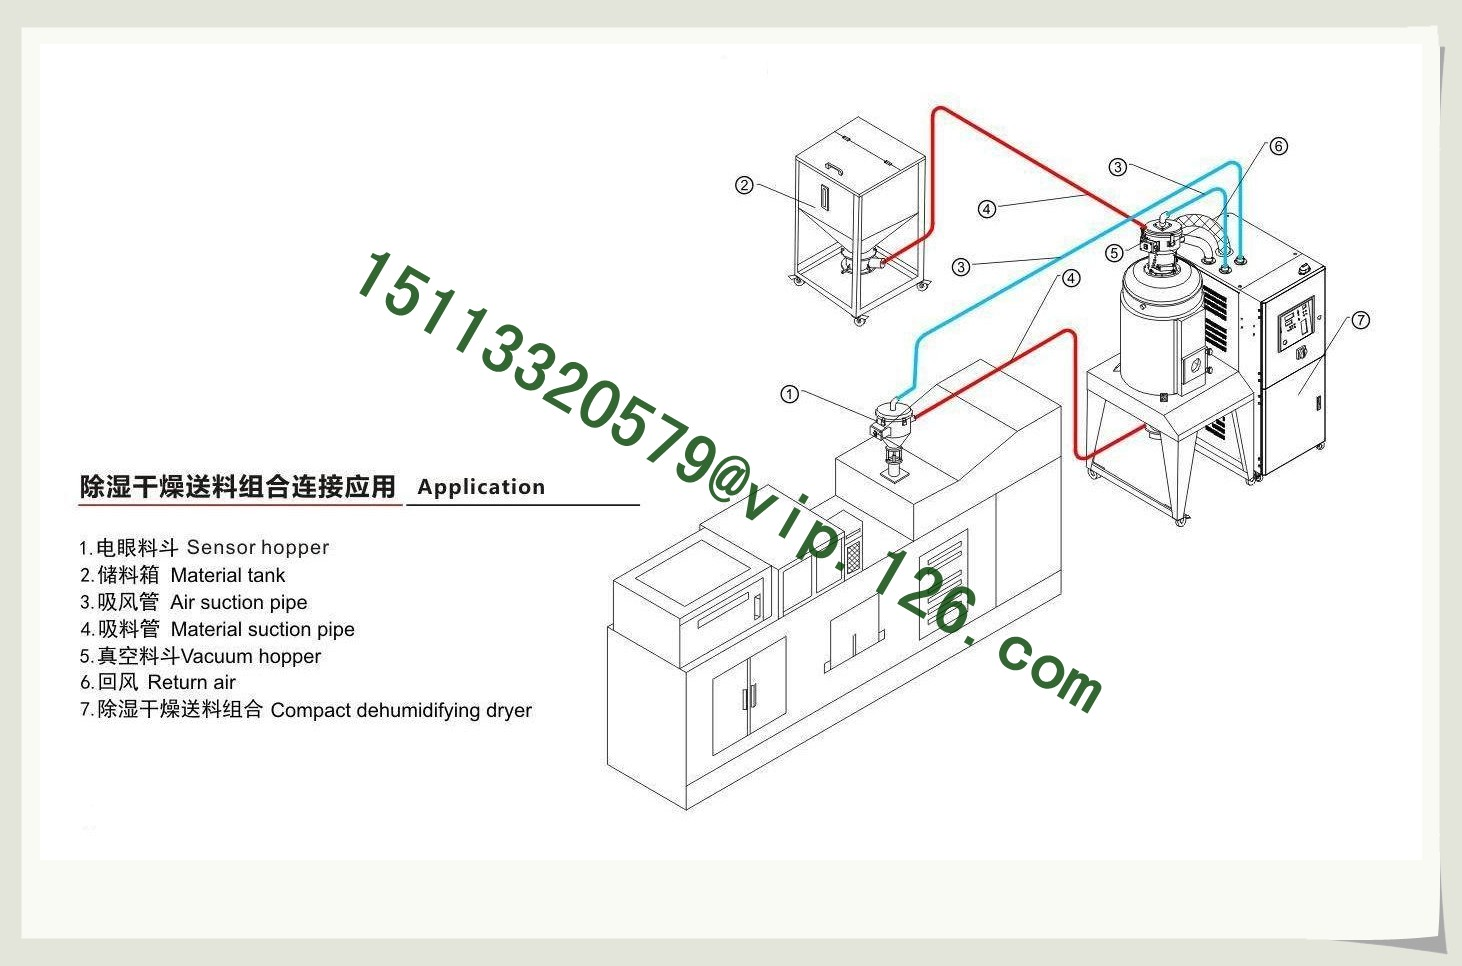 2 in 1 honeycomb dehumidifier application